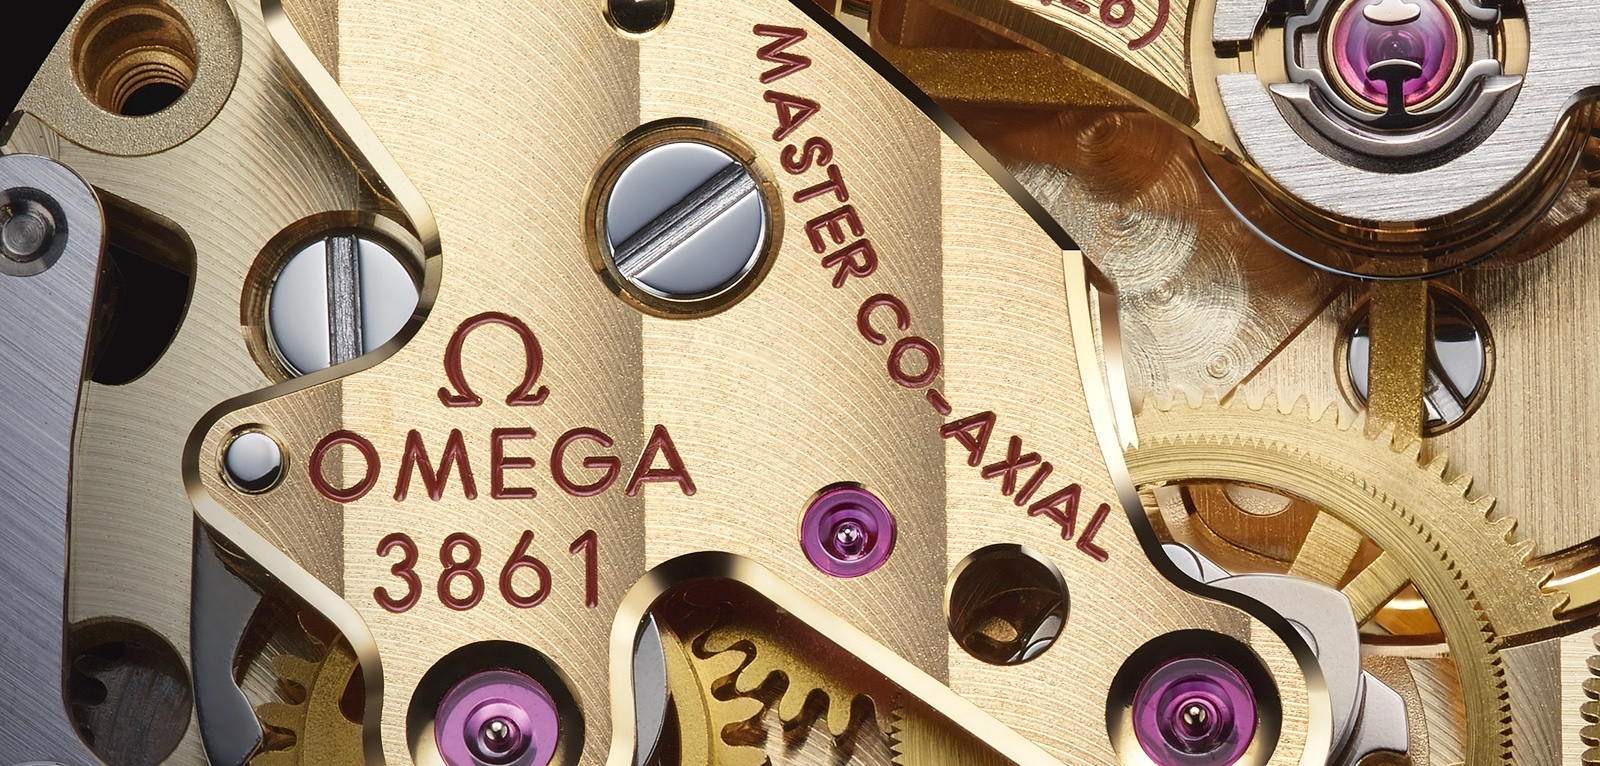 Omega Master Chronometer Calibre 3861 Cover